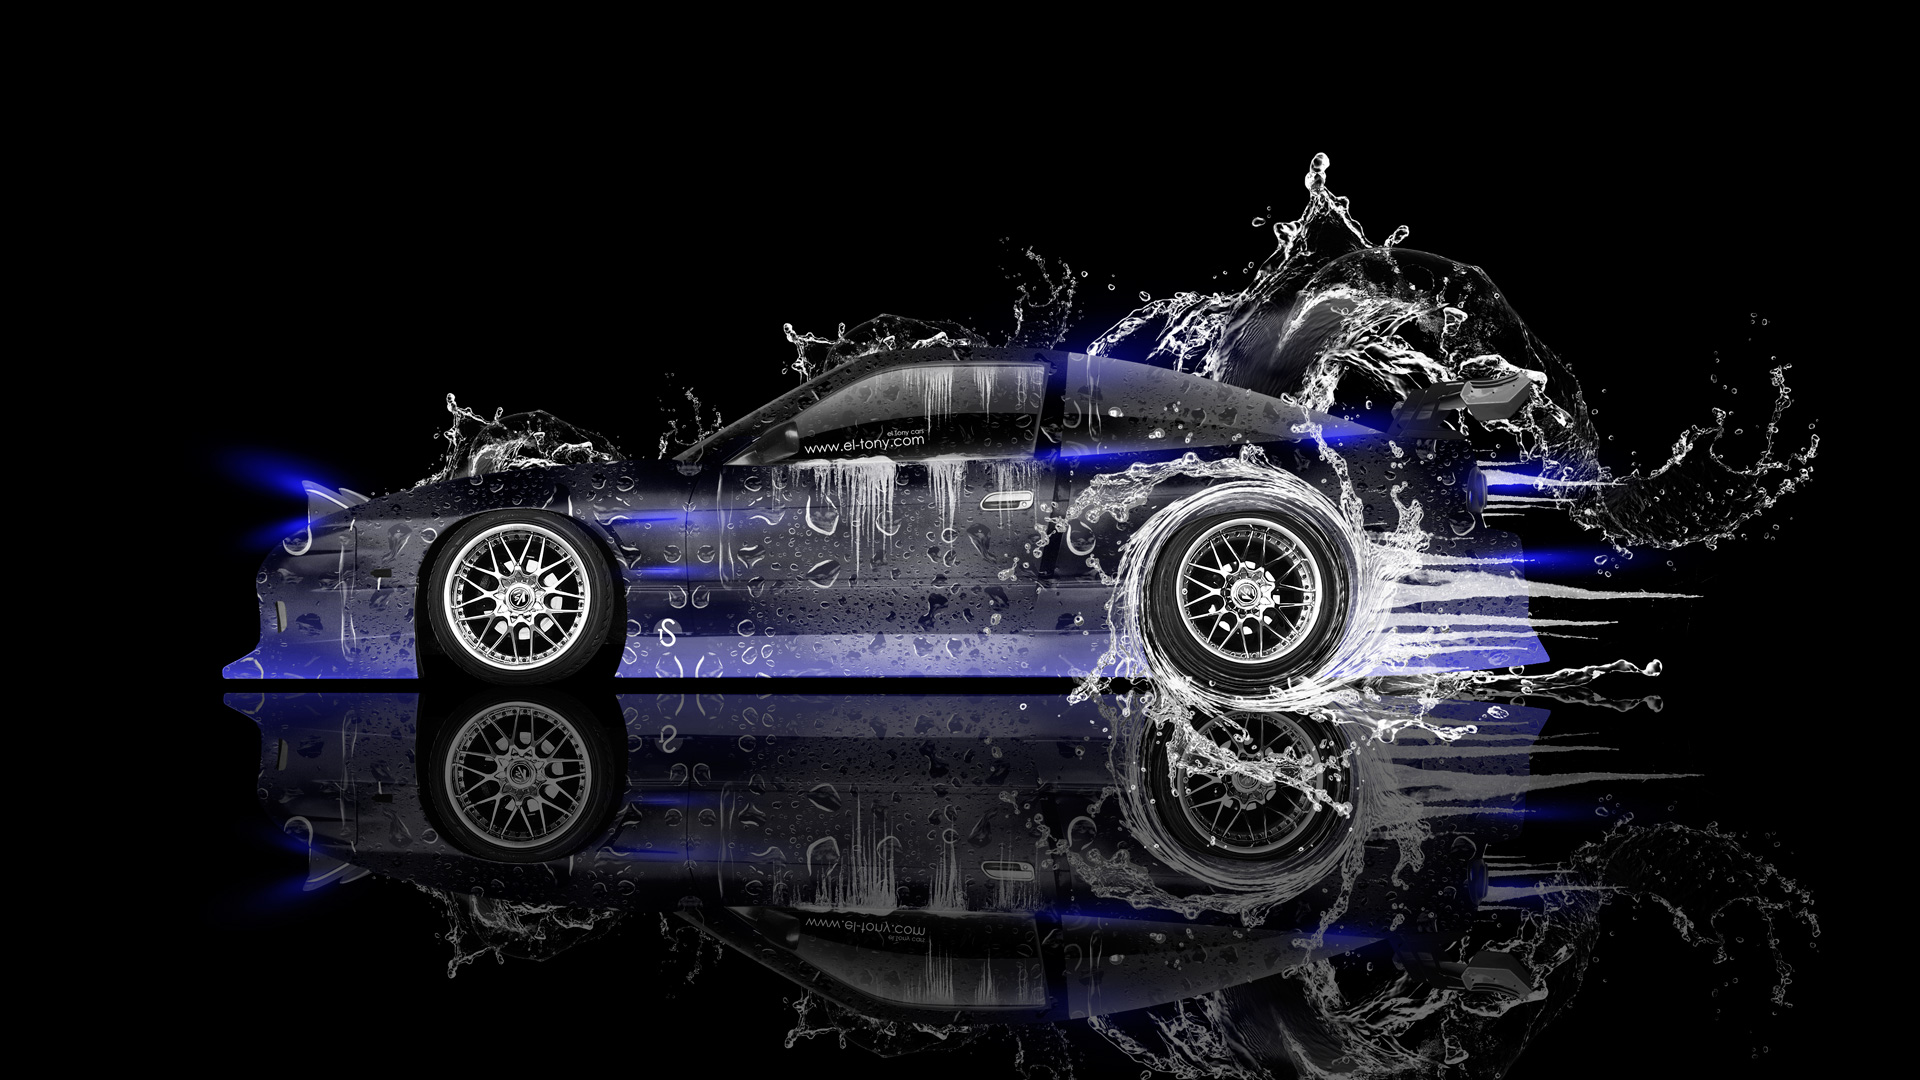 Corvette Girl Wallpaper Nissan 180sx Jdm Side Drift Water Car 2014 El Tony